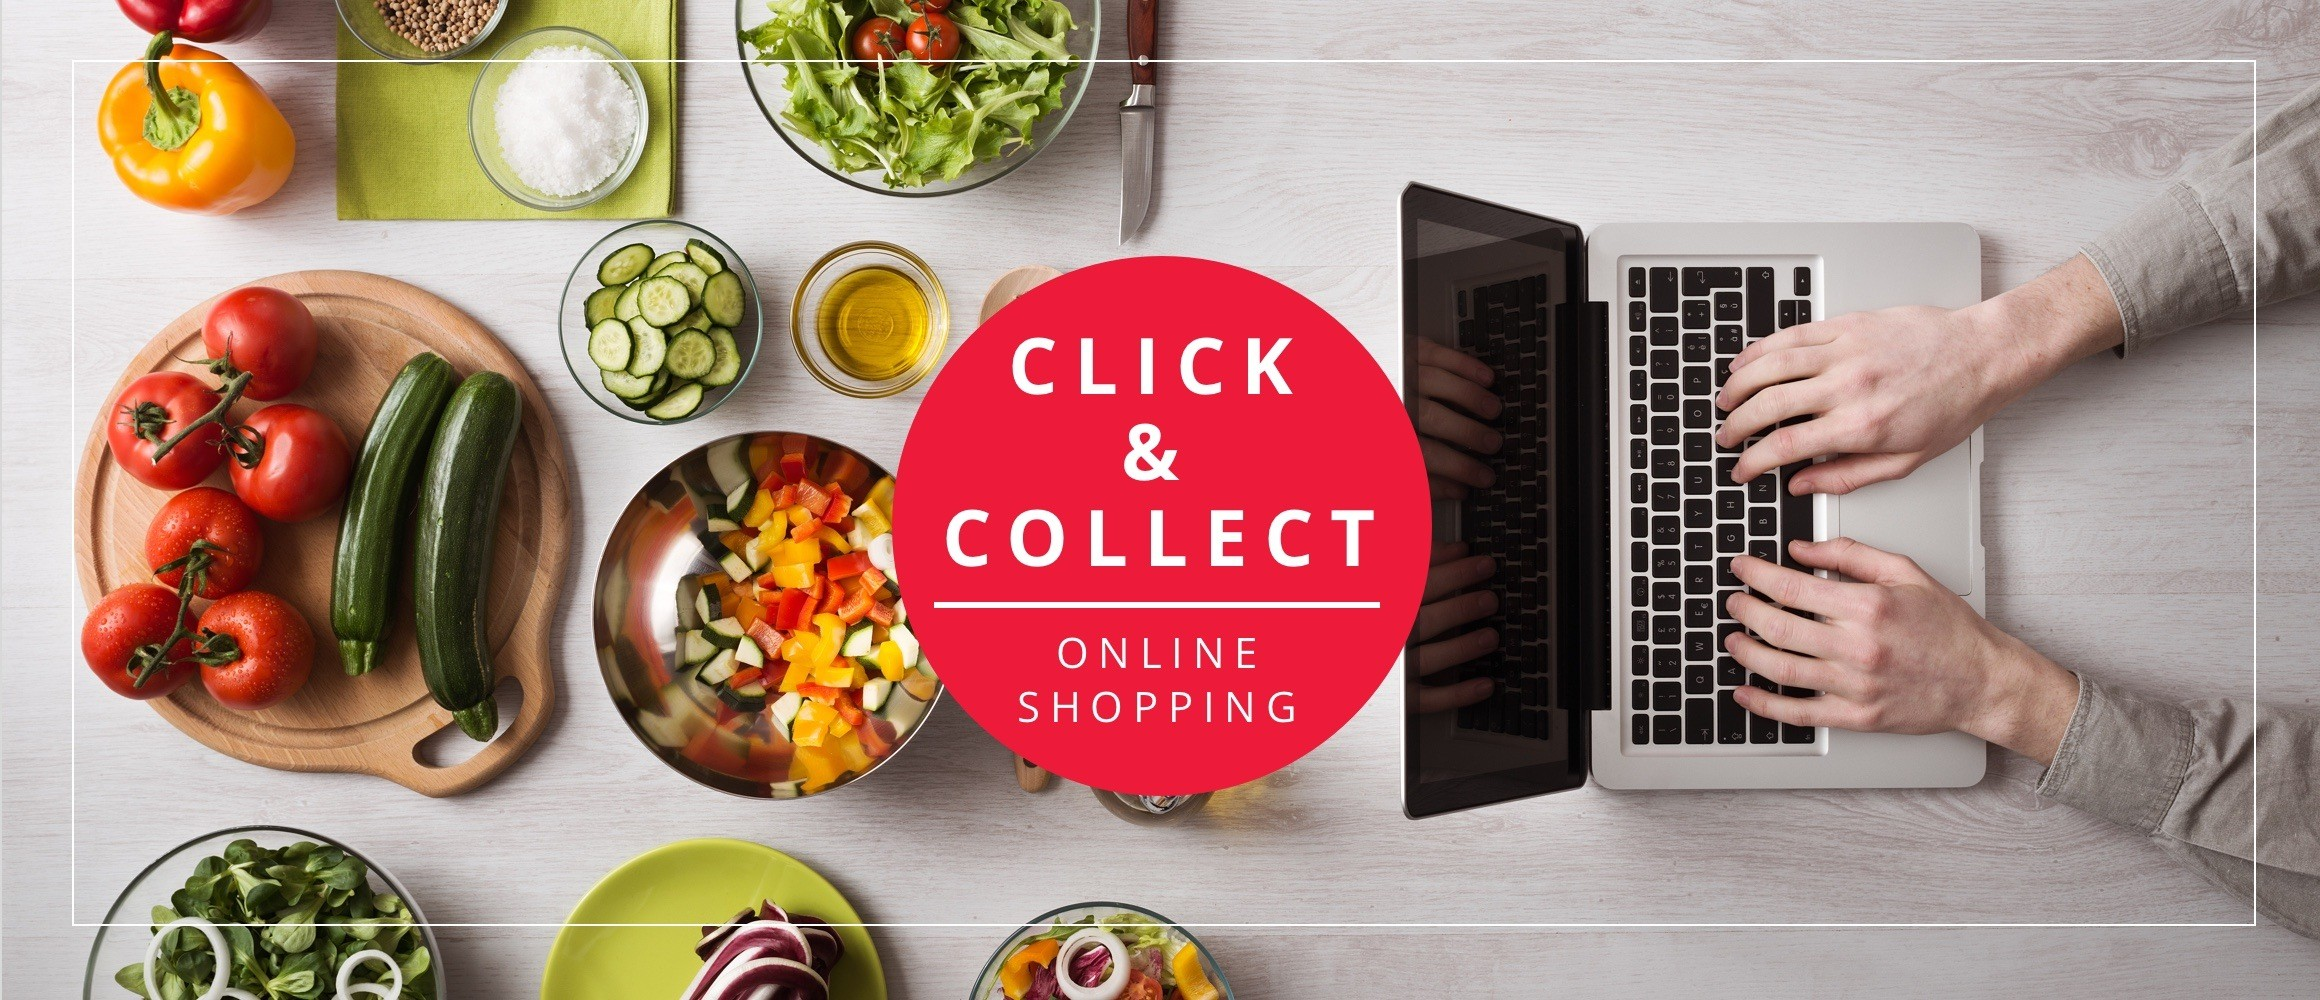 Click & Collect Online Shopping